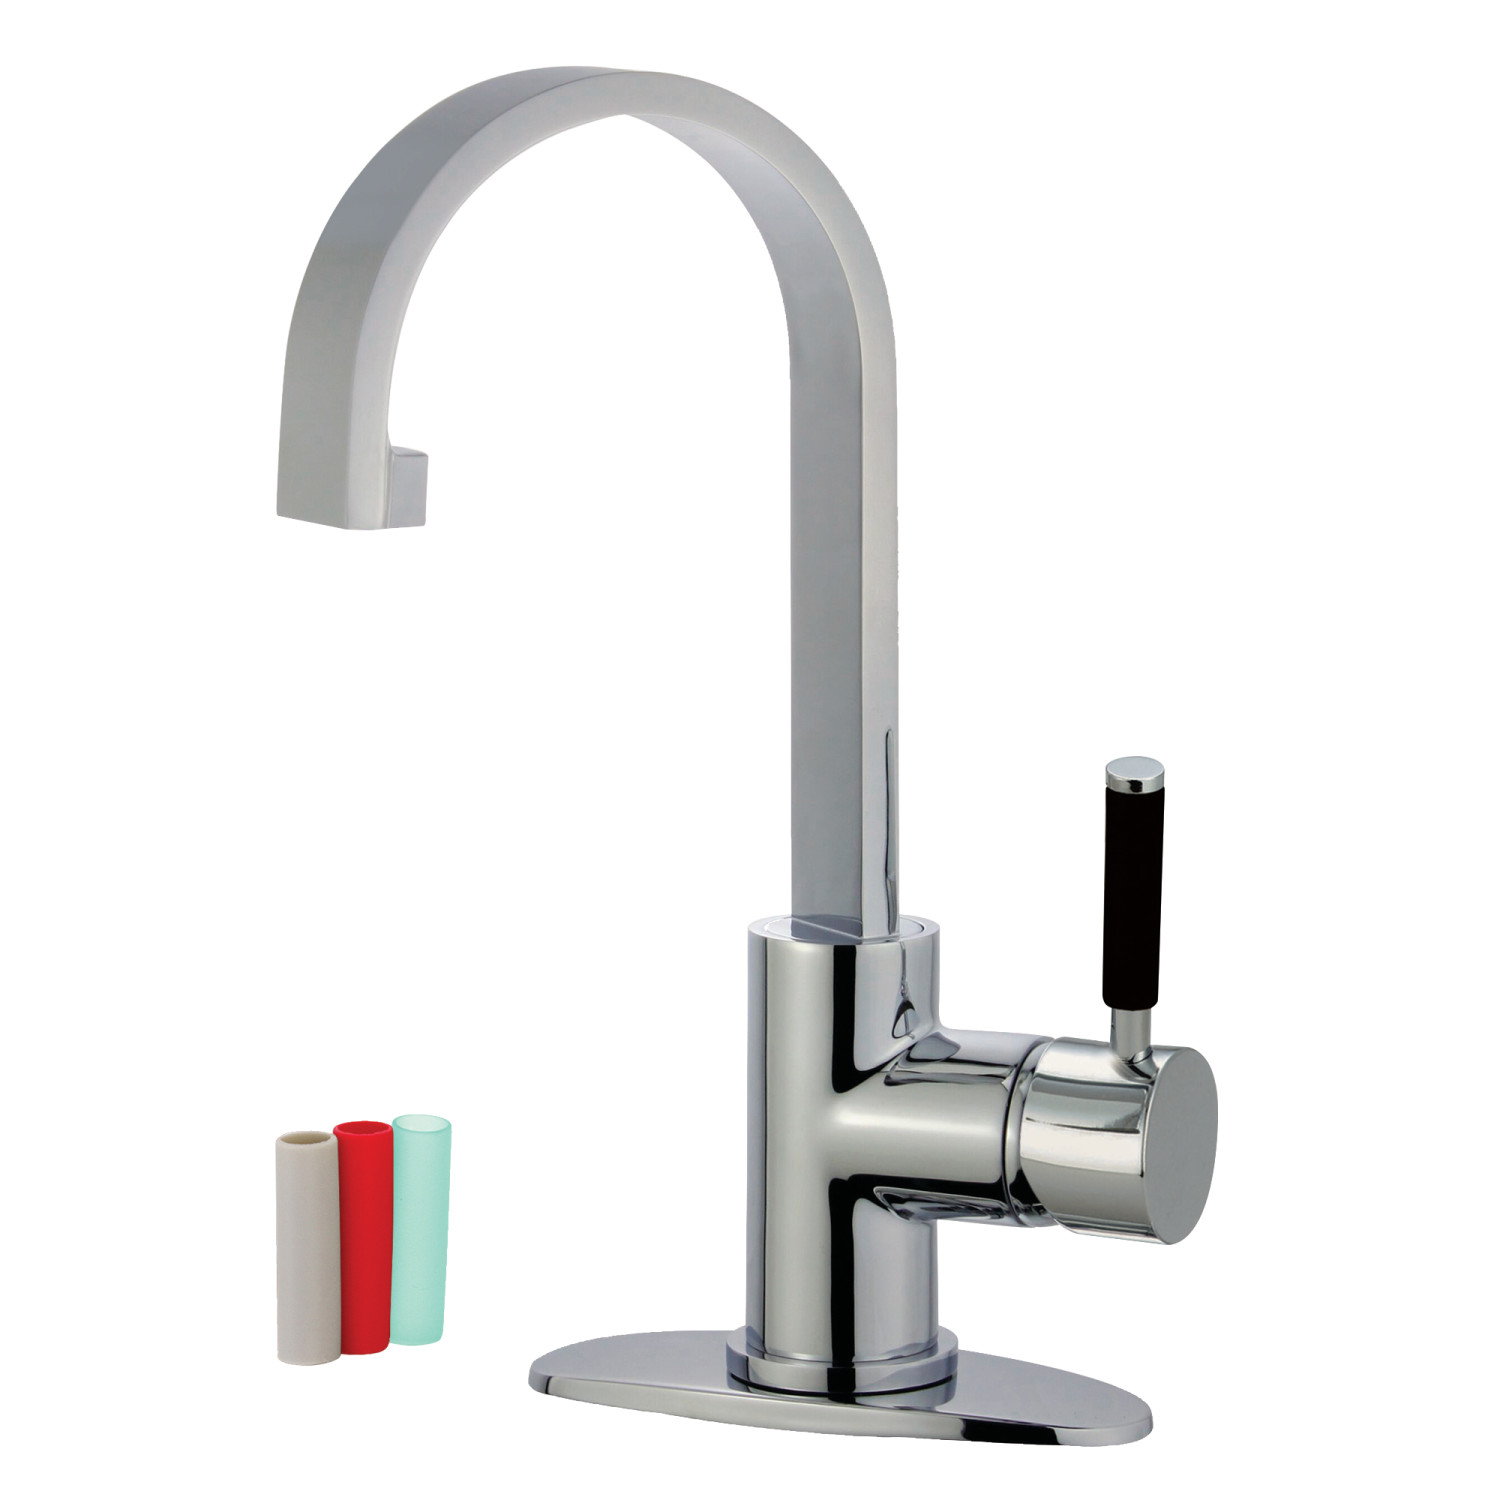 Single-Handle 1-Hole Deck Mounted Bathroom Faucet with Push Pop-Up in Polished Chrome with 3 Finish Options